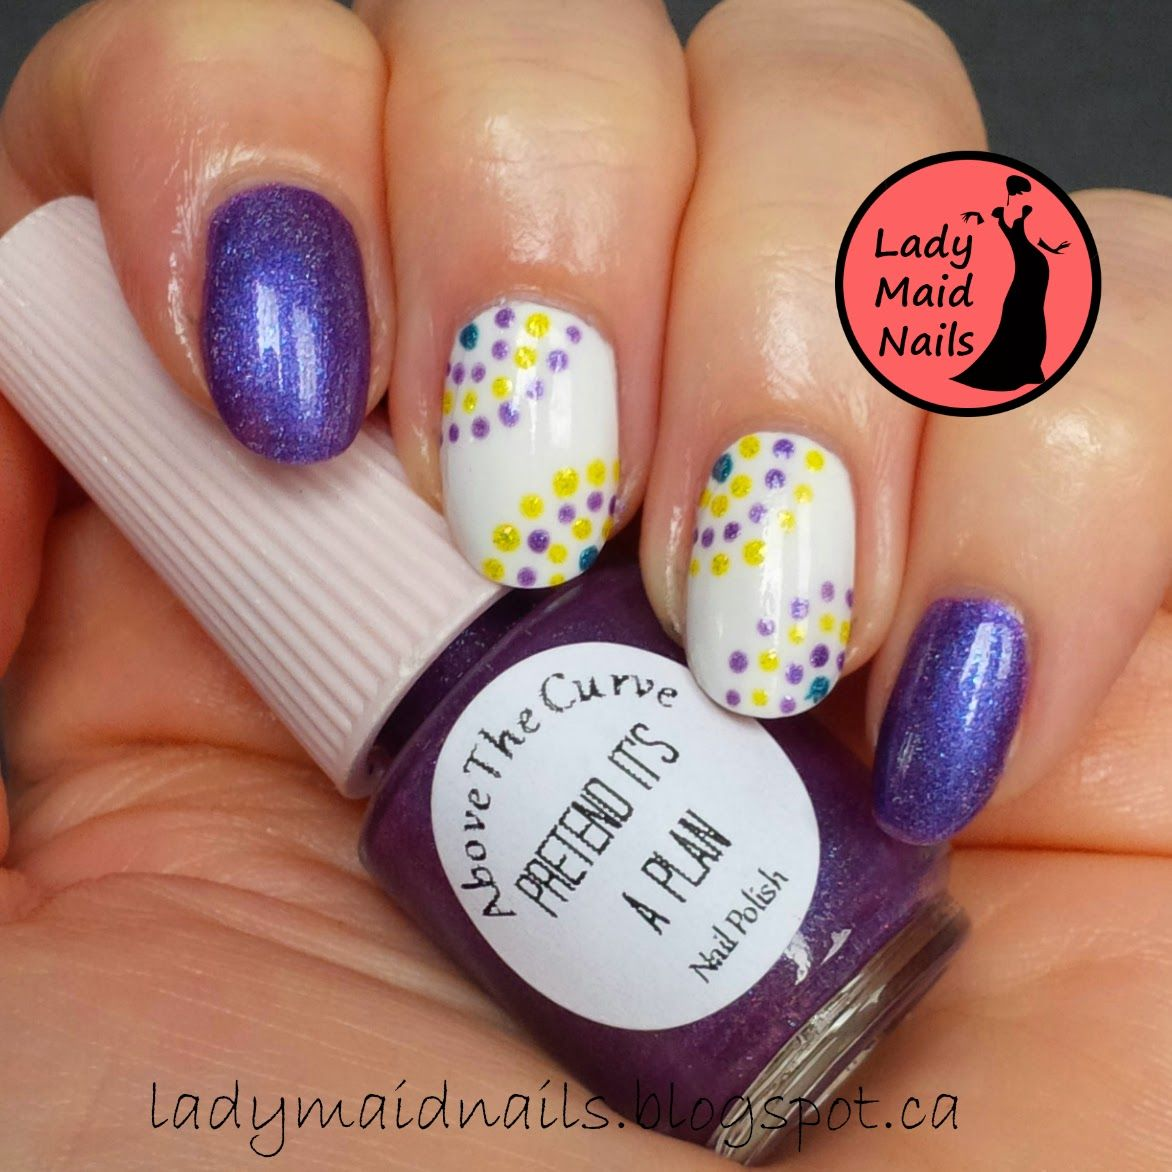 Lady maid nails above the curve nail polish and the jinxed nail